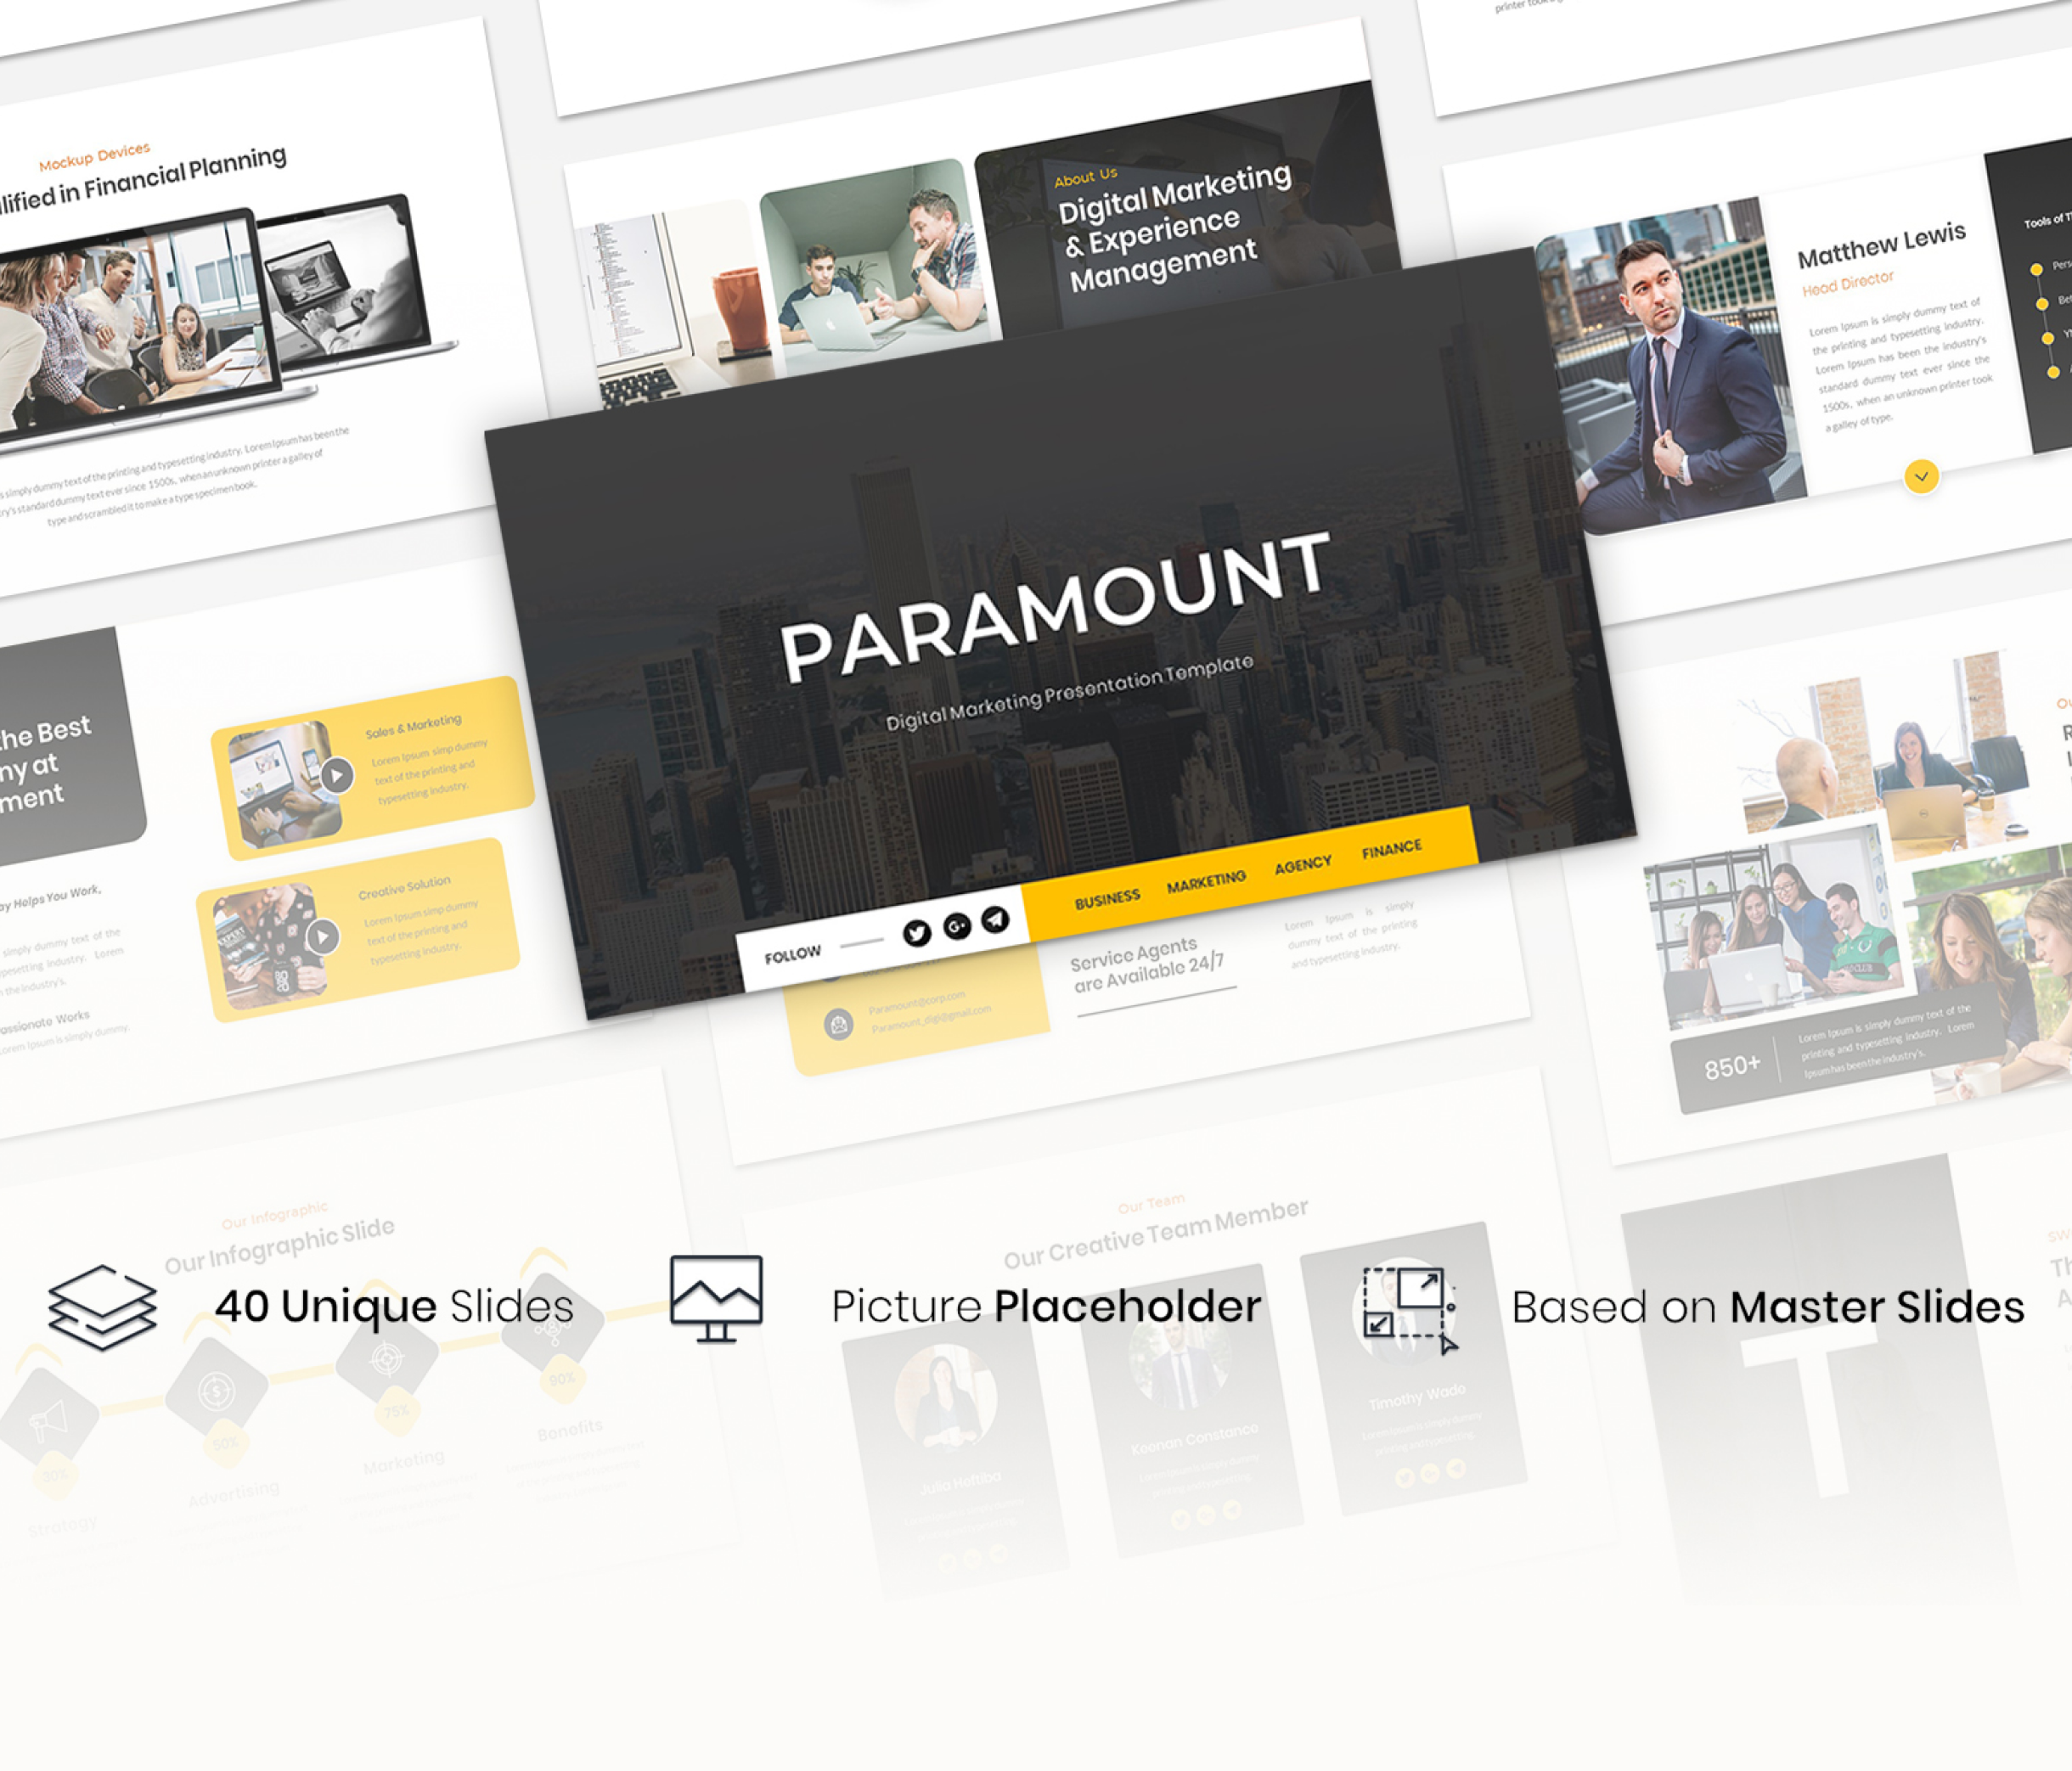 Paramount – Digital Marketing PowerPoint Template